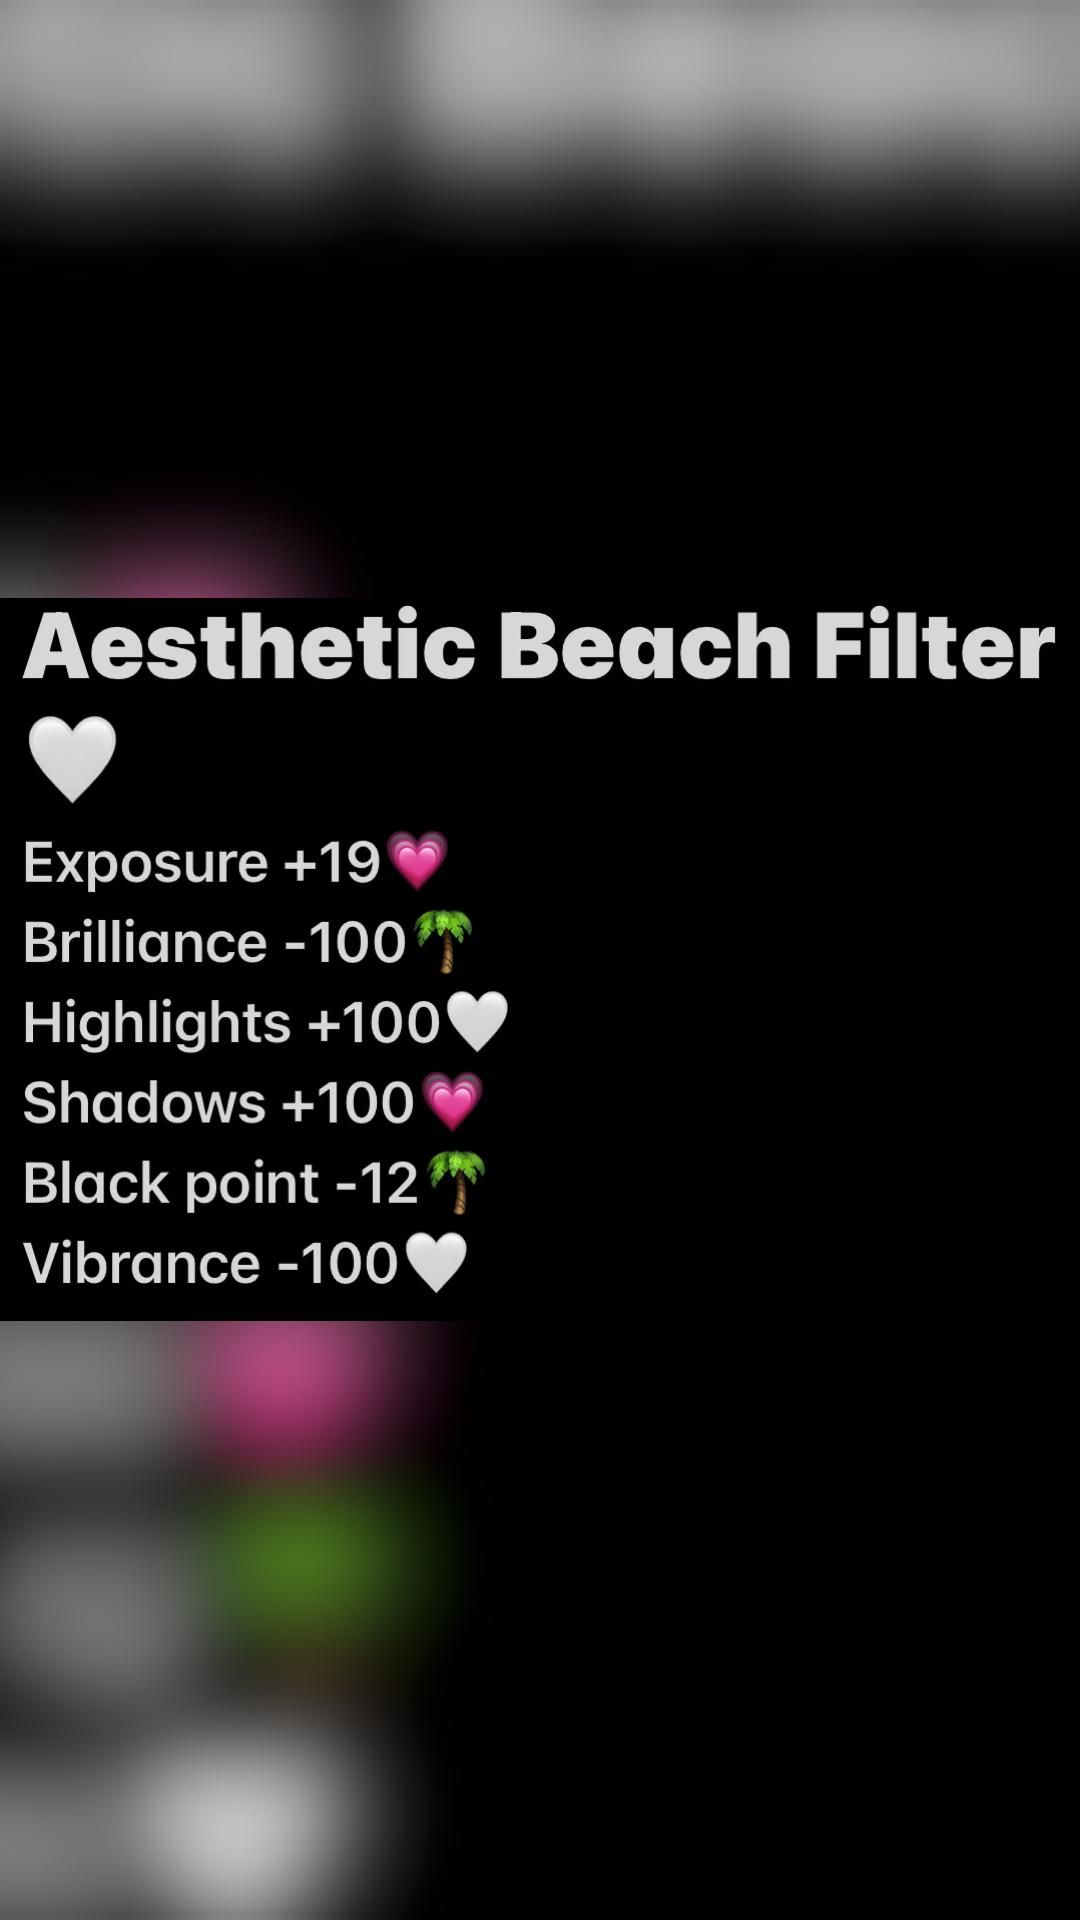 Aesthetic Beach Filter An Immersive Guide By Alana M Wyman